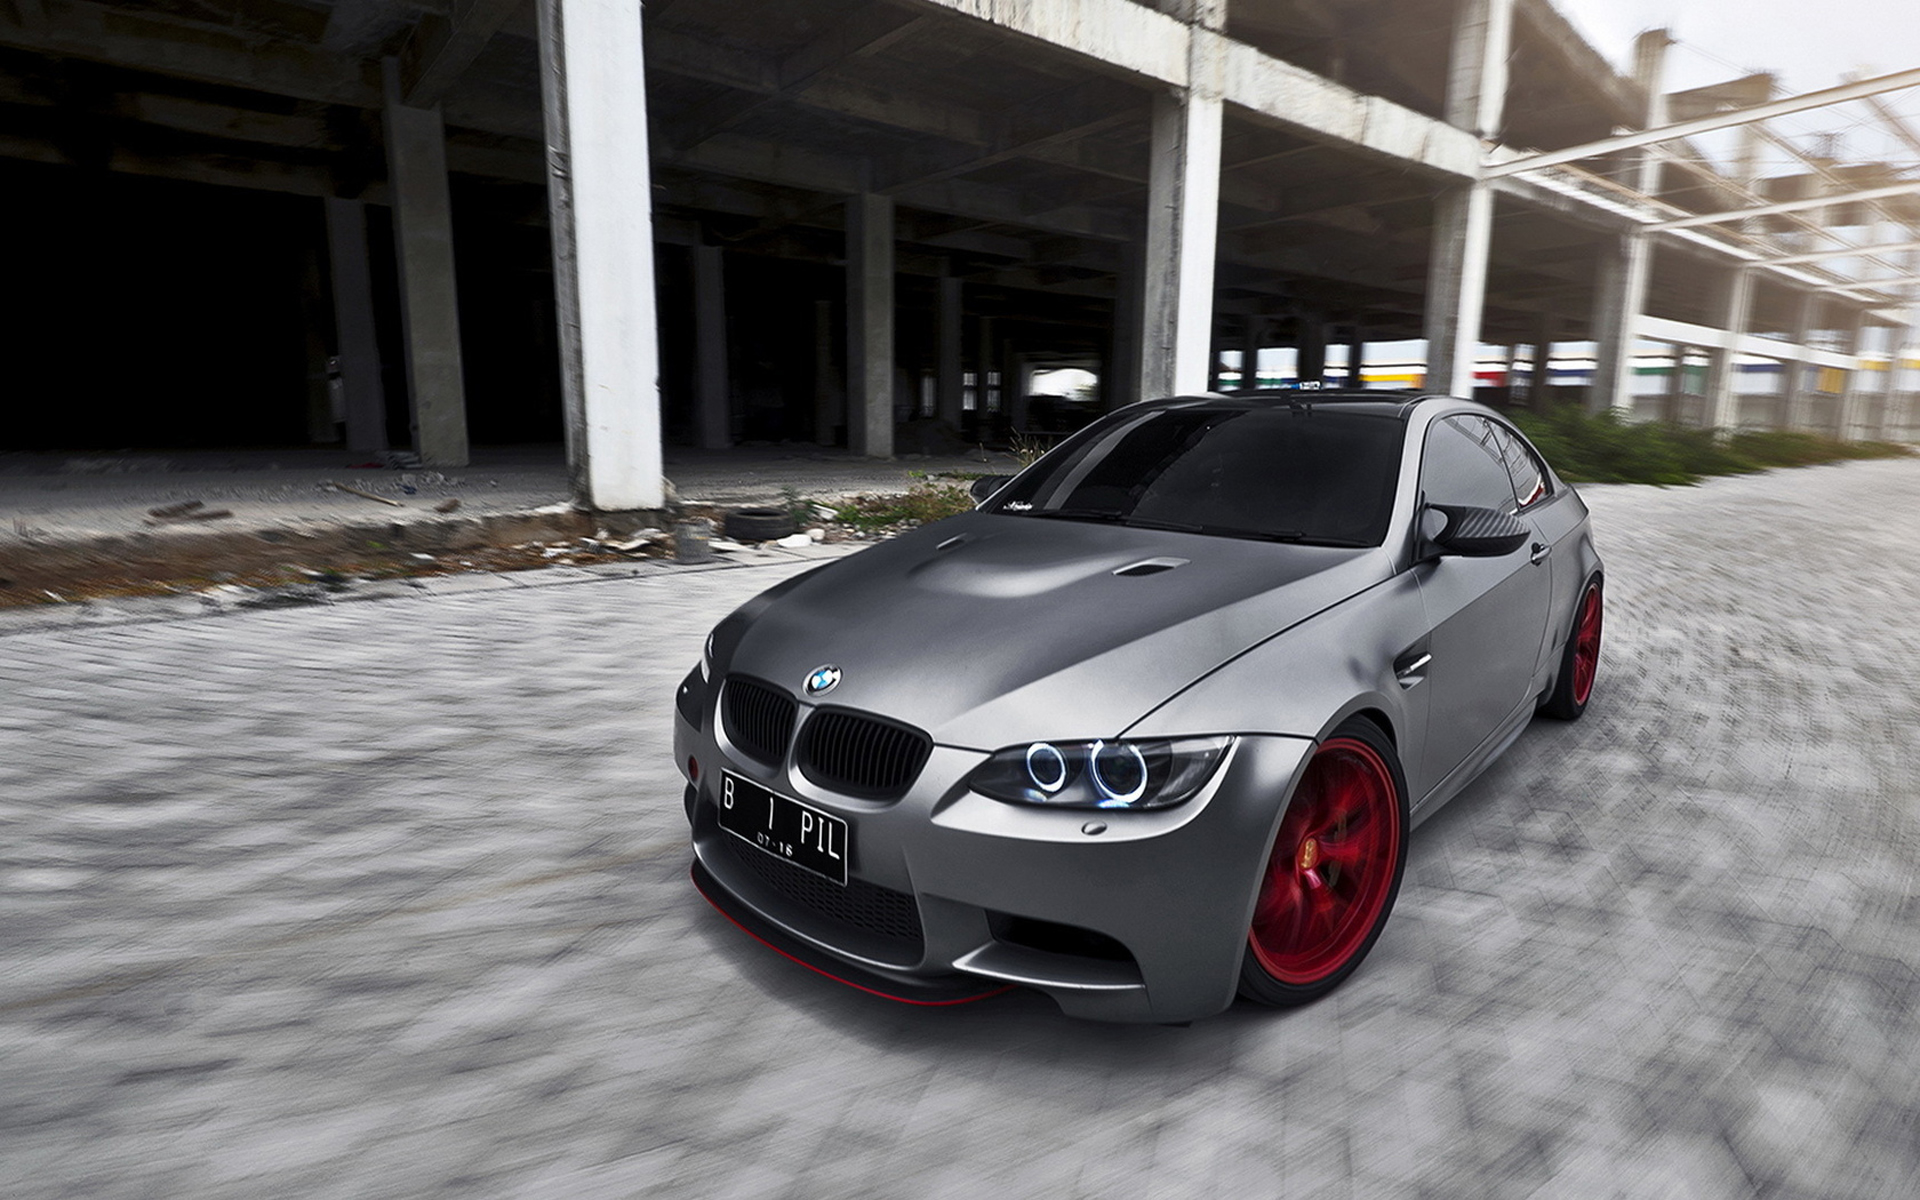 bmw car with red rims wallpaper 62563